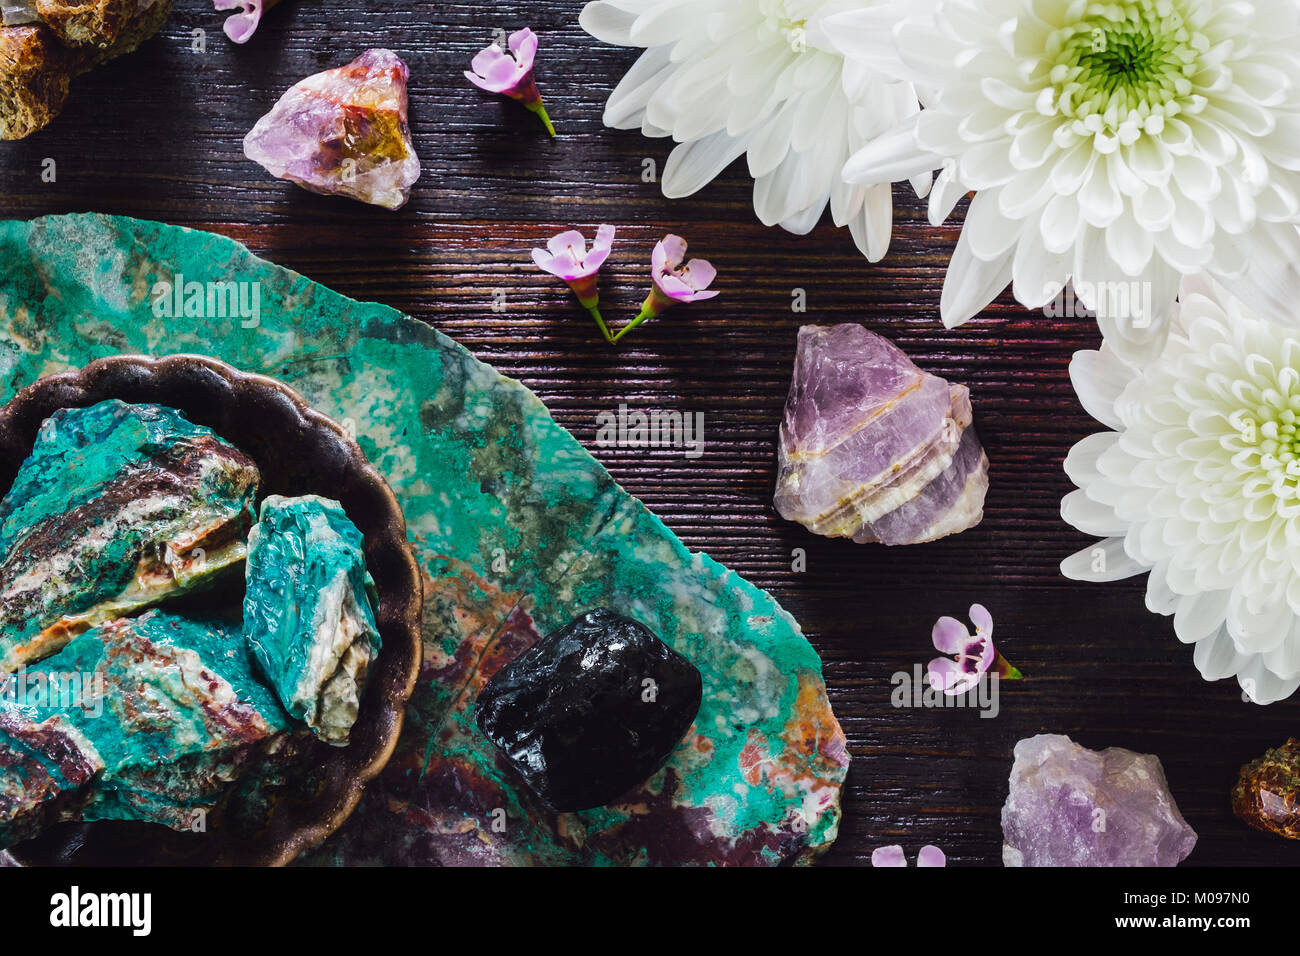 Rough Amethyst, Turquoise, Garnet in Matrix and Onyx with Mixed Flowers on Dark Table Stock Photo